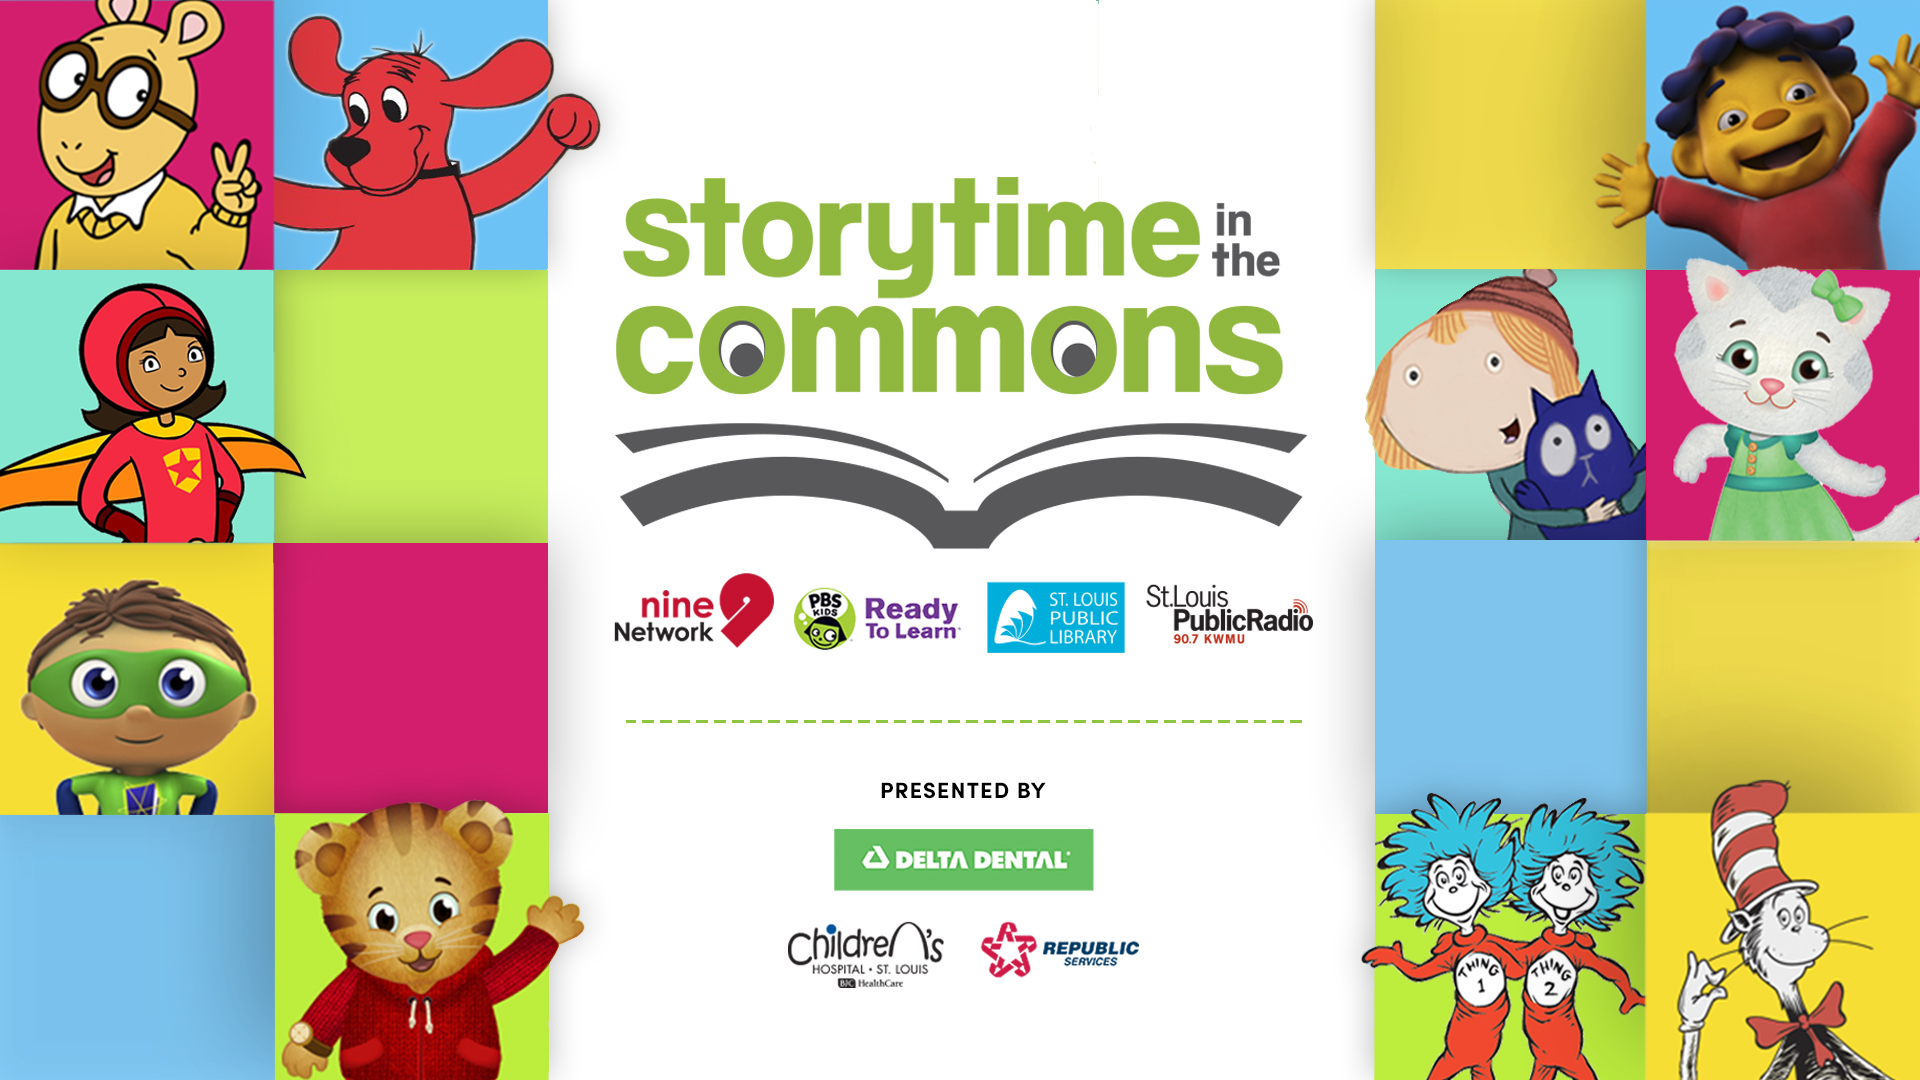 Storytime in the Commons